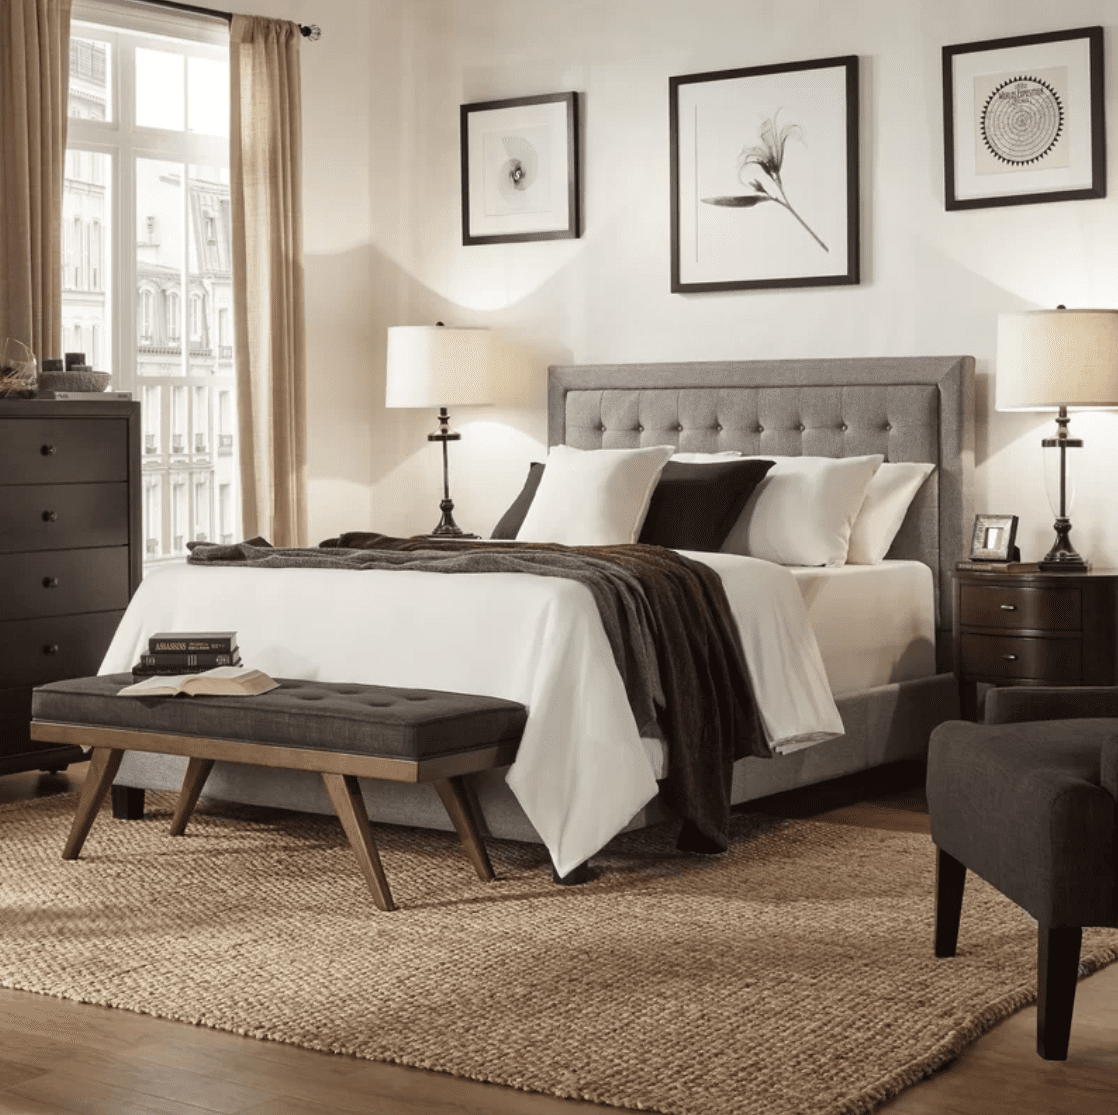 The 18 Best Spots To Buy Furniture Online: The 7 Best Places To Buy A Bed In 2020